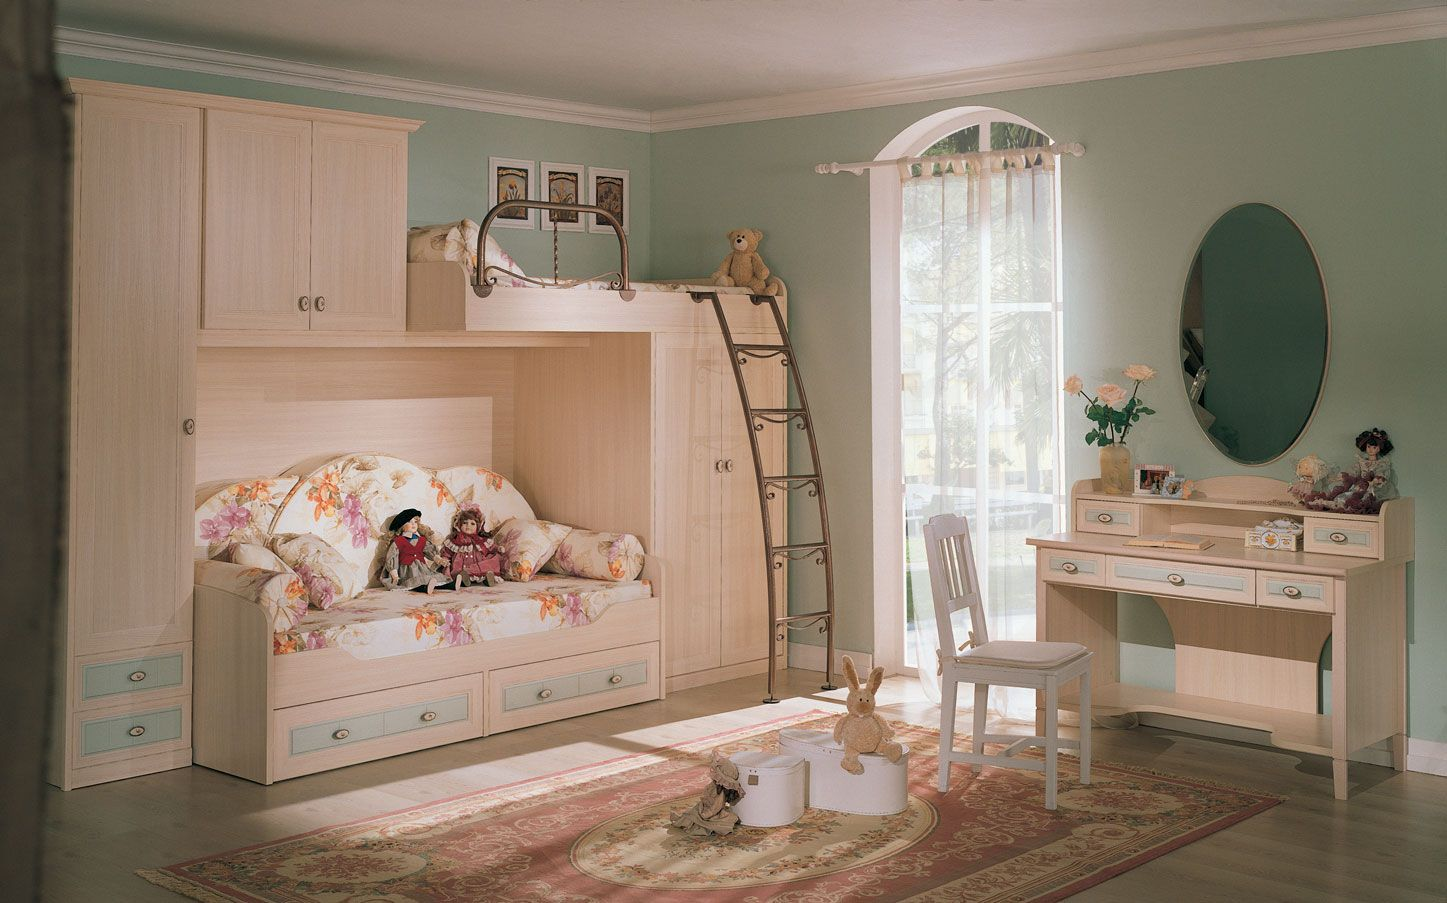 kids bedrooms bedroom and living room image collections 17 best images about kids bedrooms on pinterest childs bedroom 17 best images about kids bedrooms